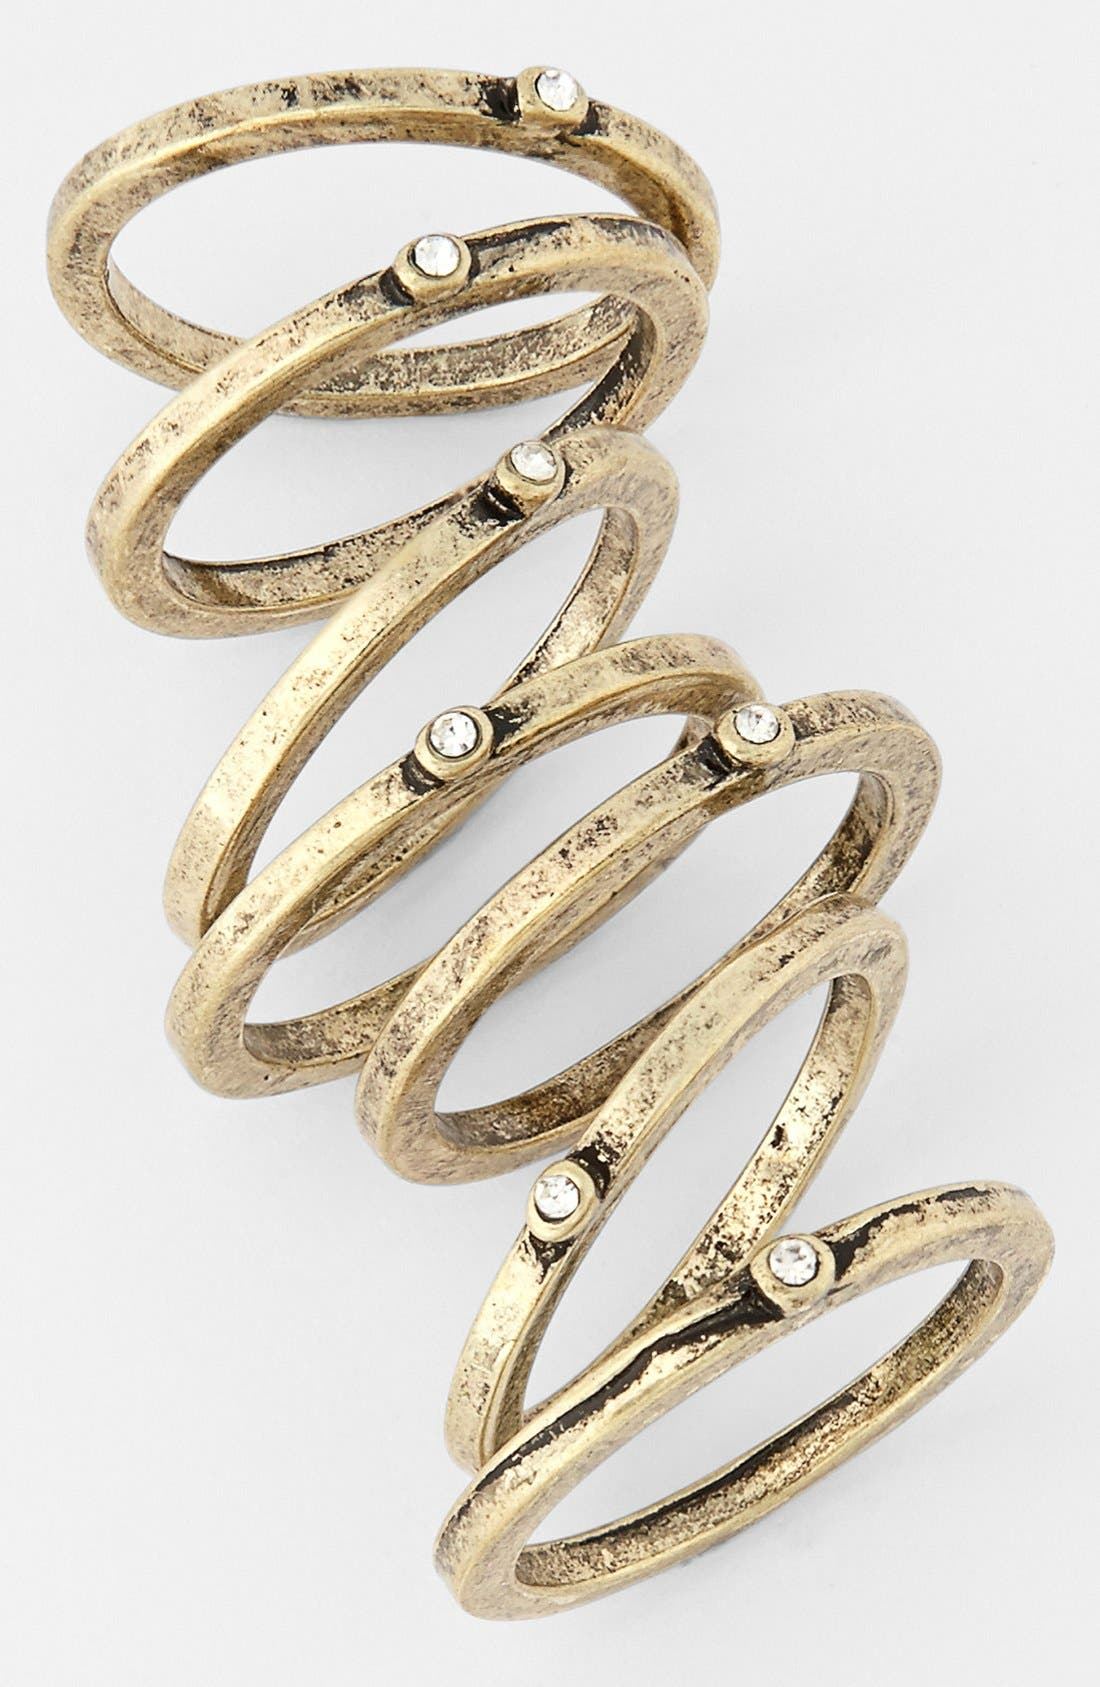 Alternate Image 1 Selected - Statements by DCK Stackable Rings (Set of 7)